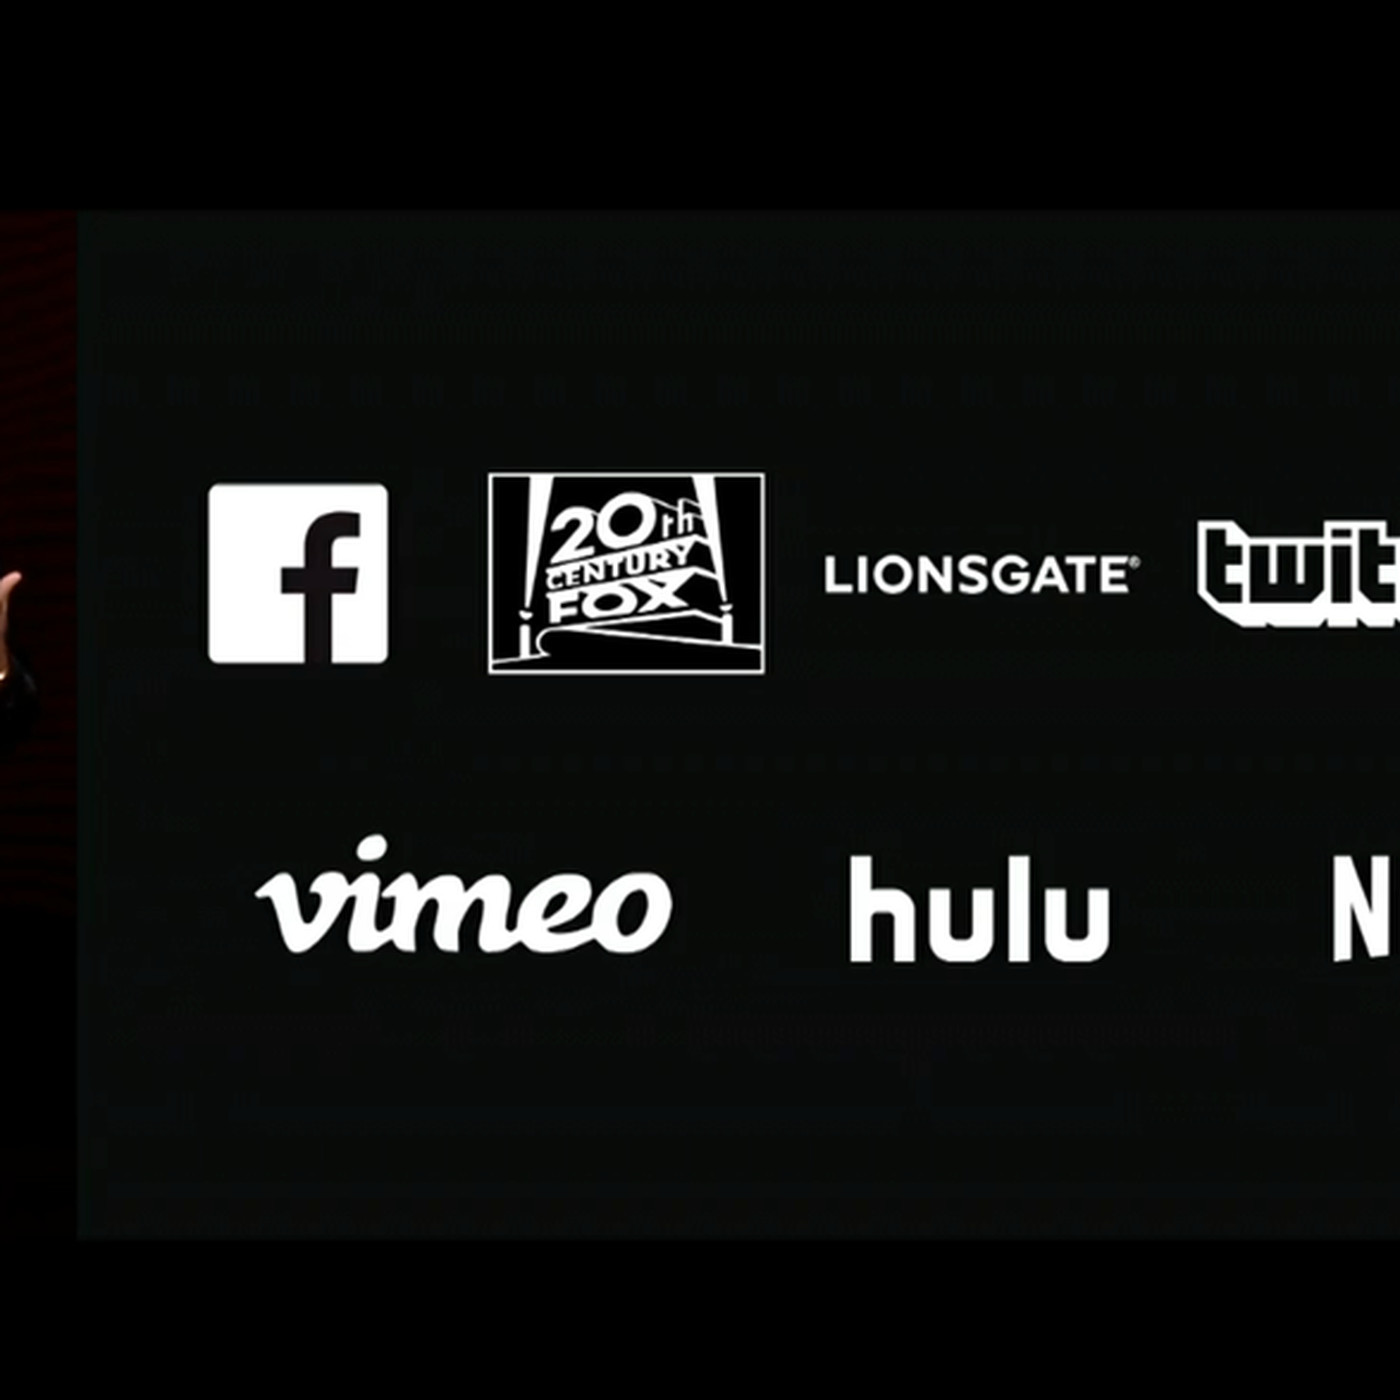 Oculus makes huge play for VR video with Netflix, Twitch support